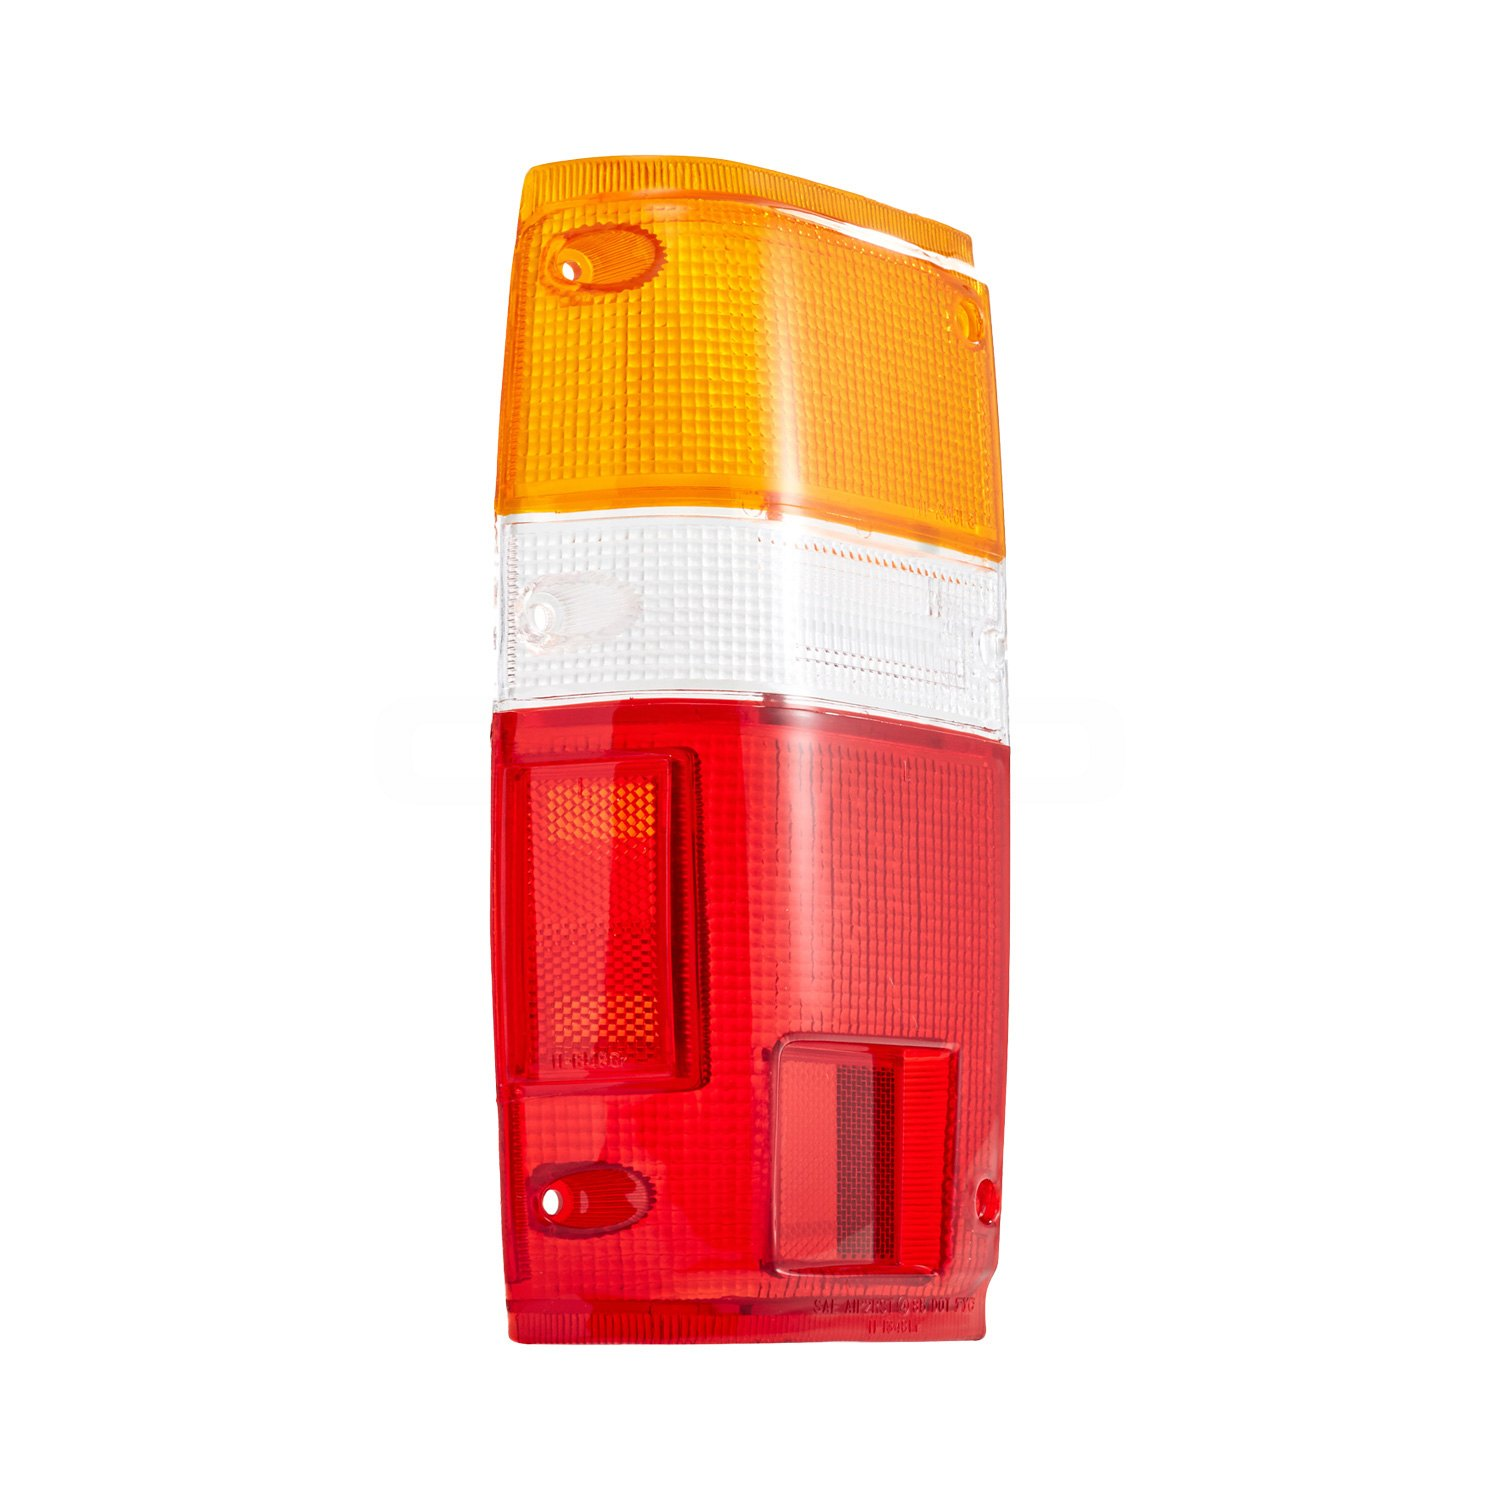 Tyc toyota pick up 1986 replacement tail light lens for Garage toyota lens